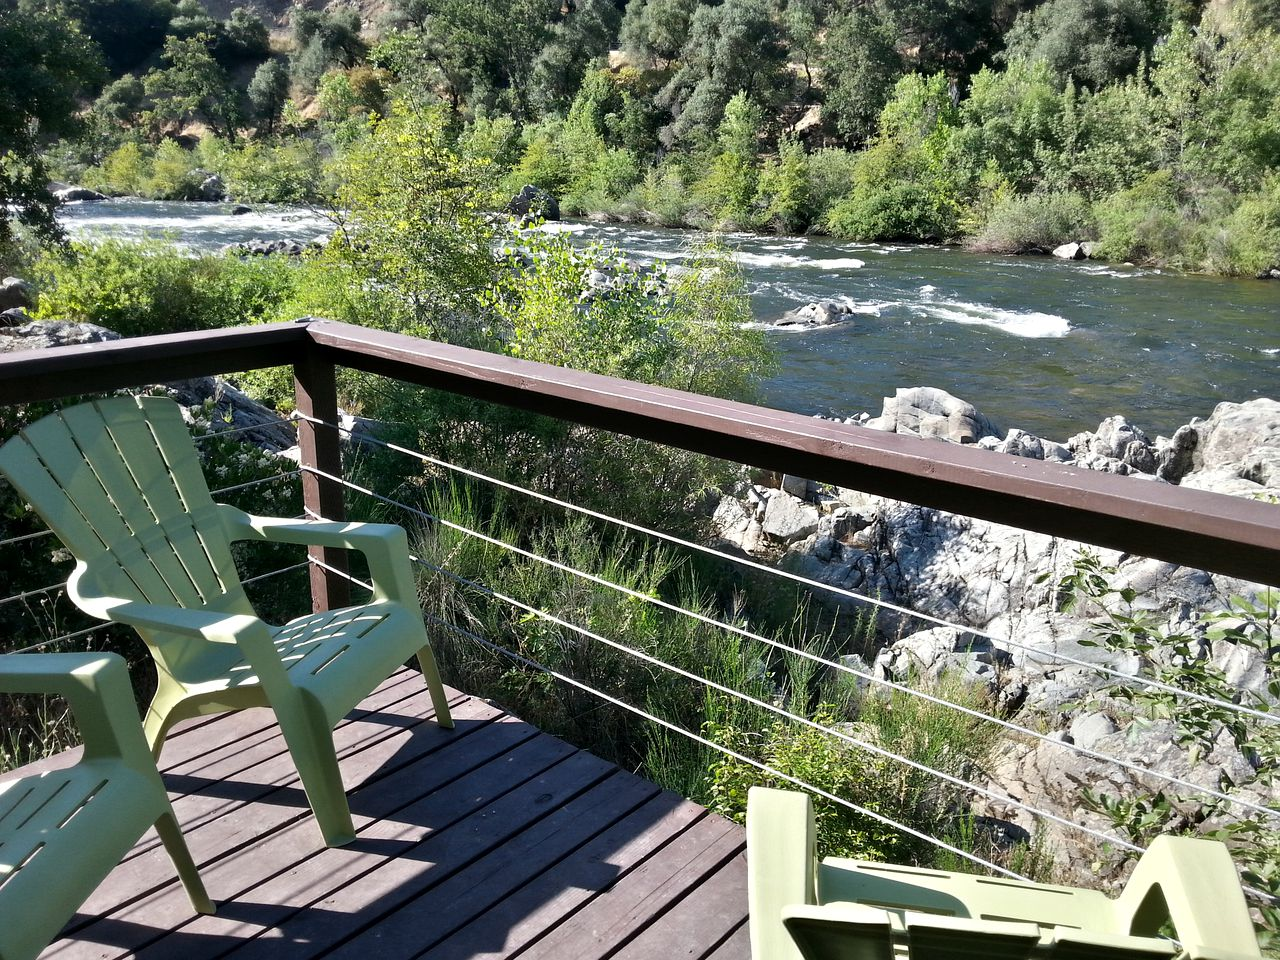 Rustic tents on the American River for glamping in California.